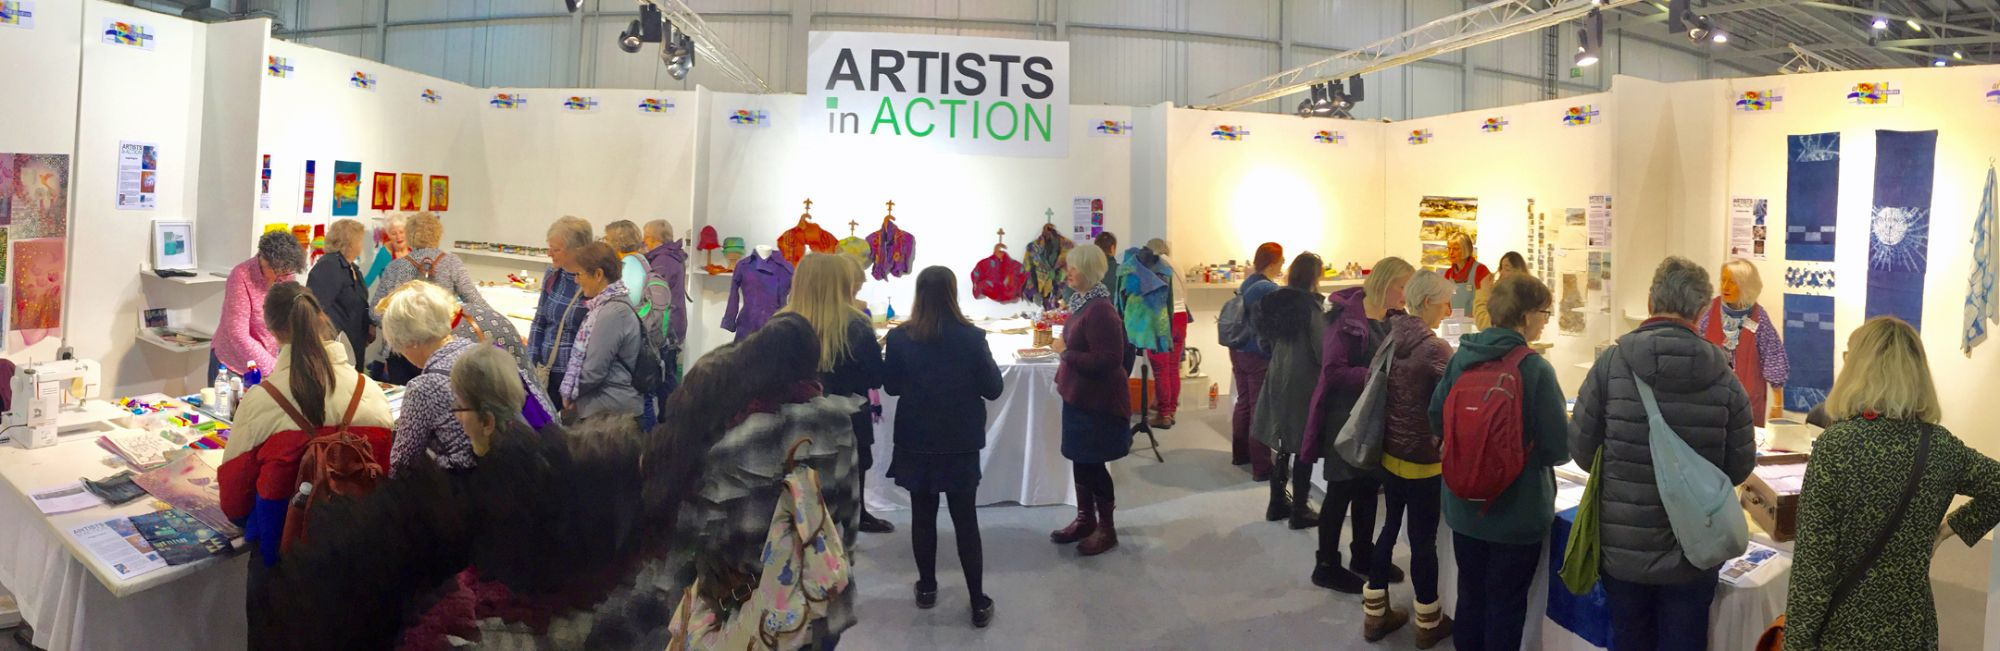 Artists in Action in Harrogate